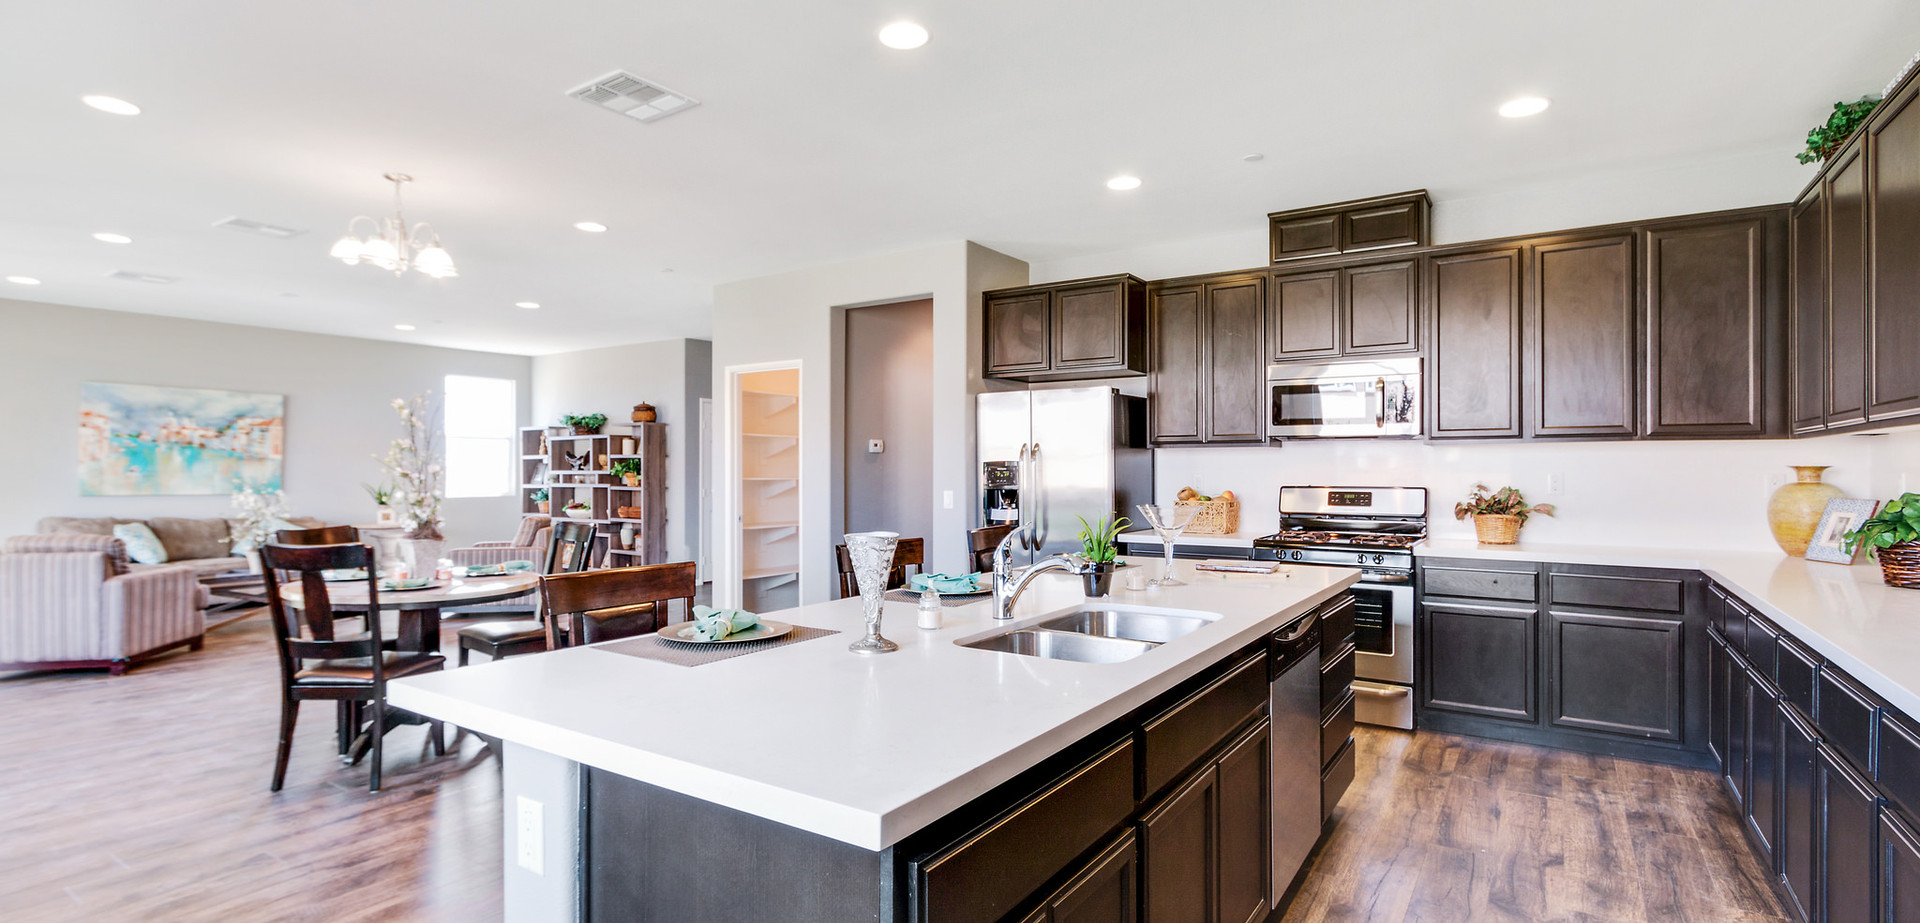 Oak Hills 1 - Plan 2 - Kitchen.jpg